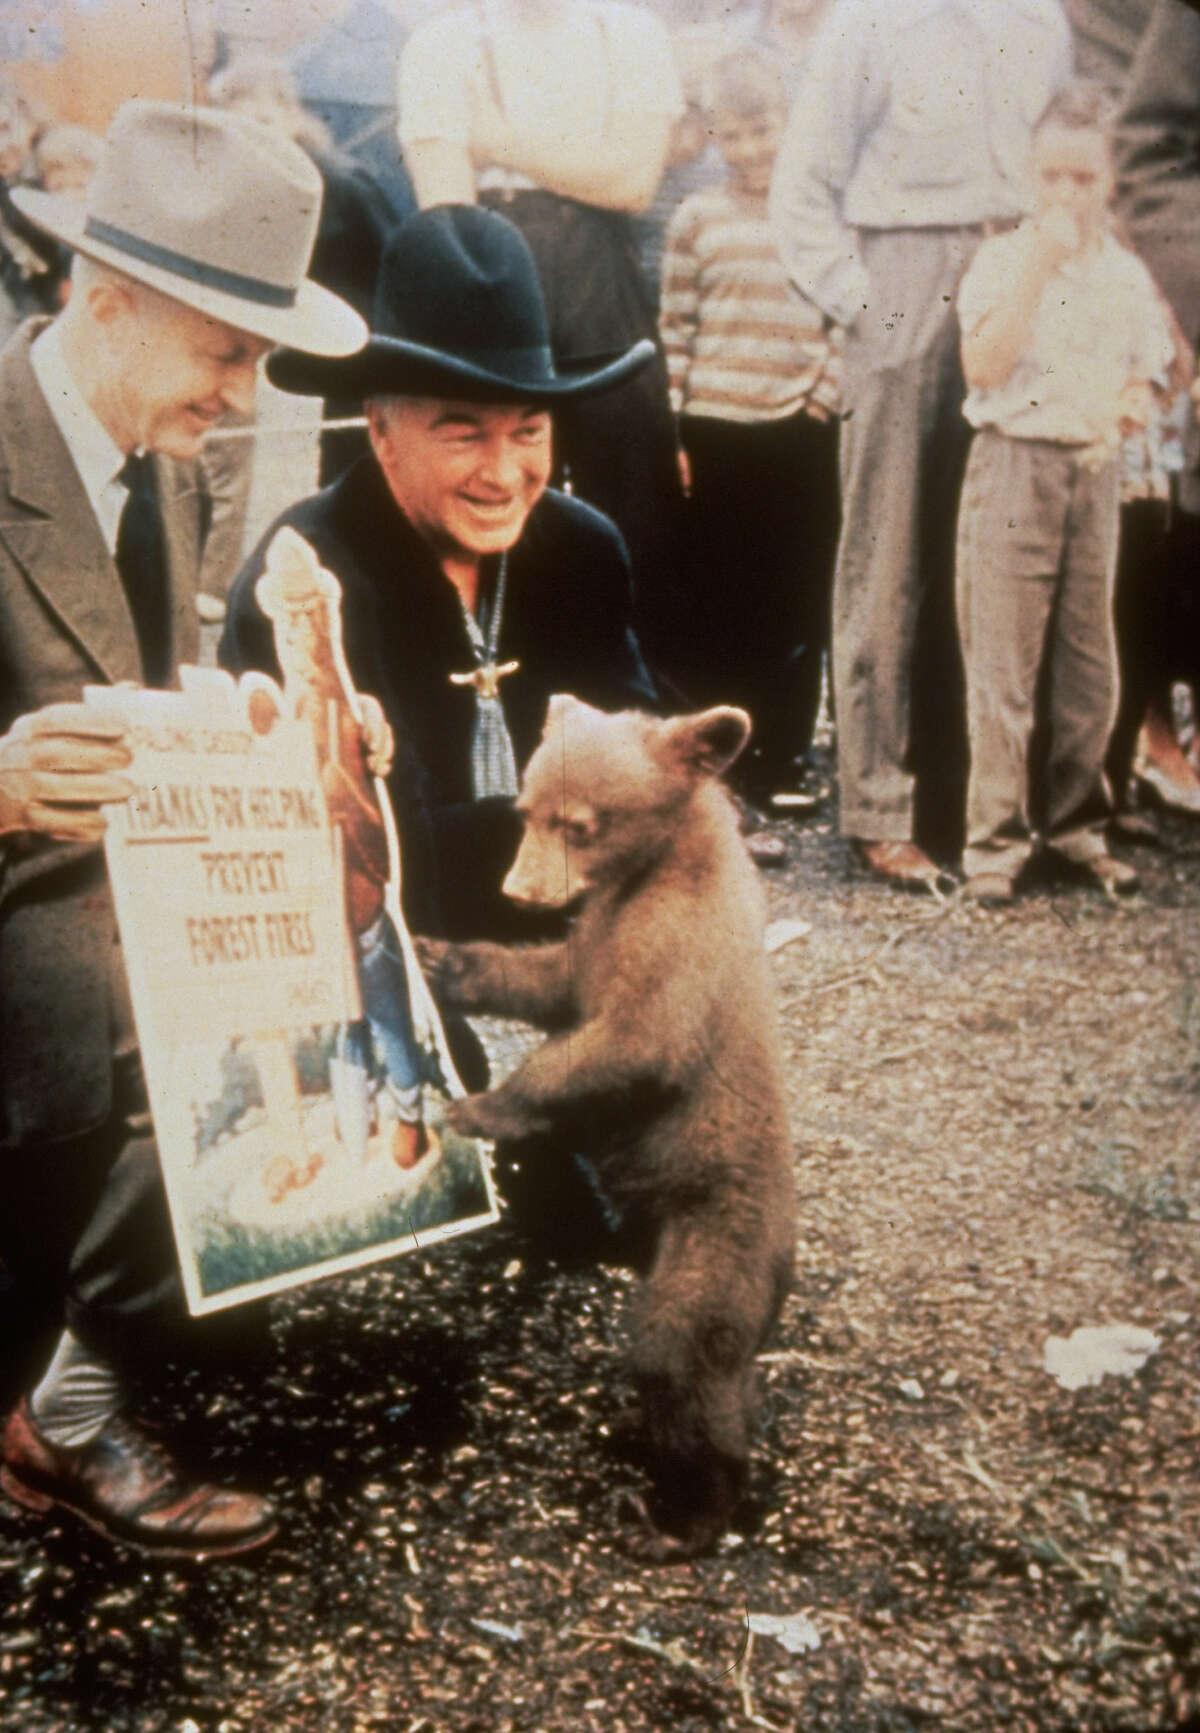 Hopalong Cassidy The show produced original episodes from 1952 to 1954. The star, William Boyd, is seen here dressed in his trademark black outfit greeting Smokey Bear.